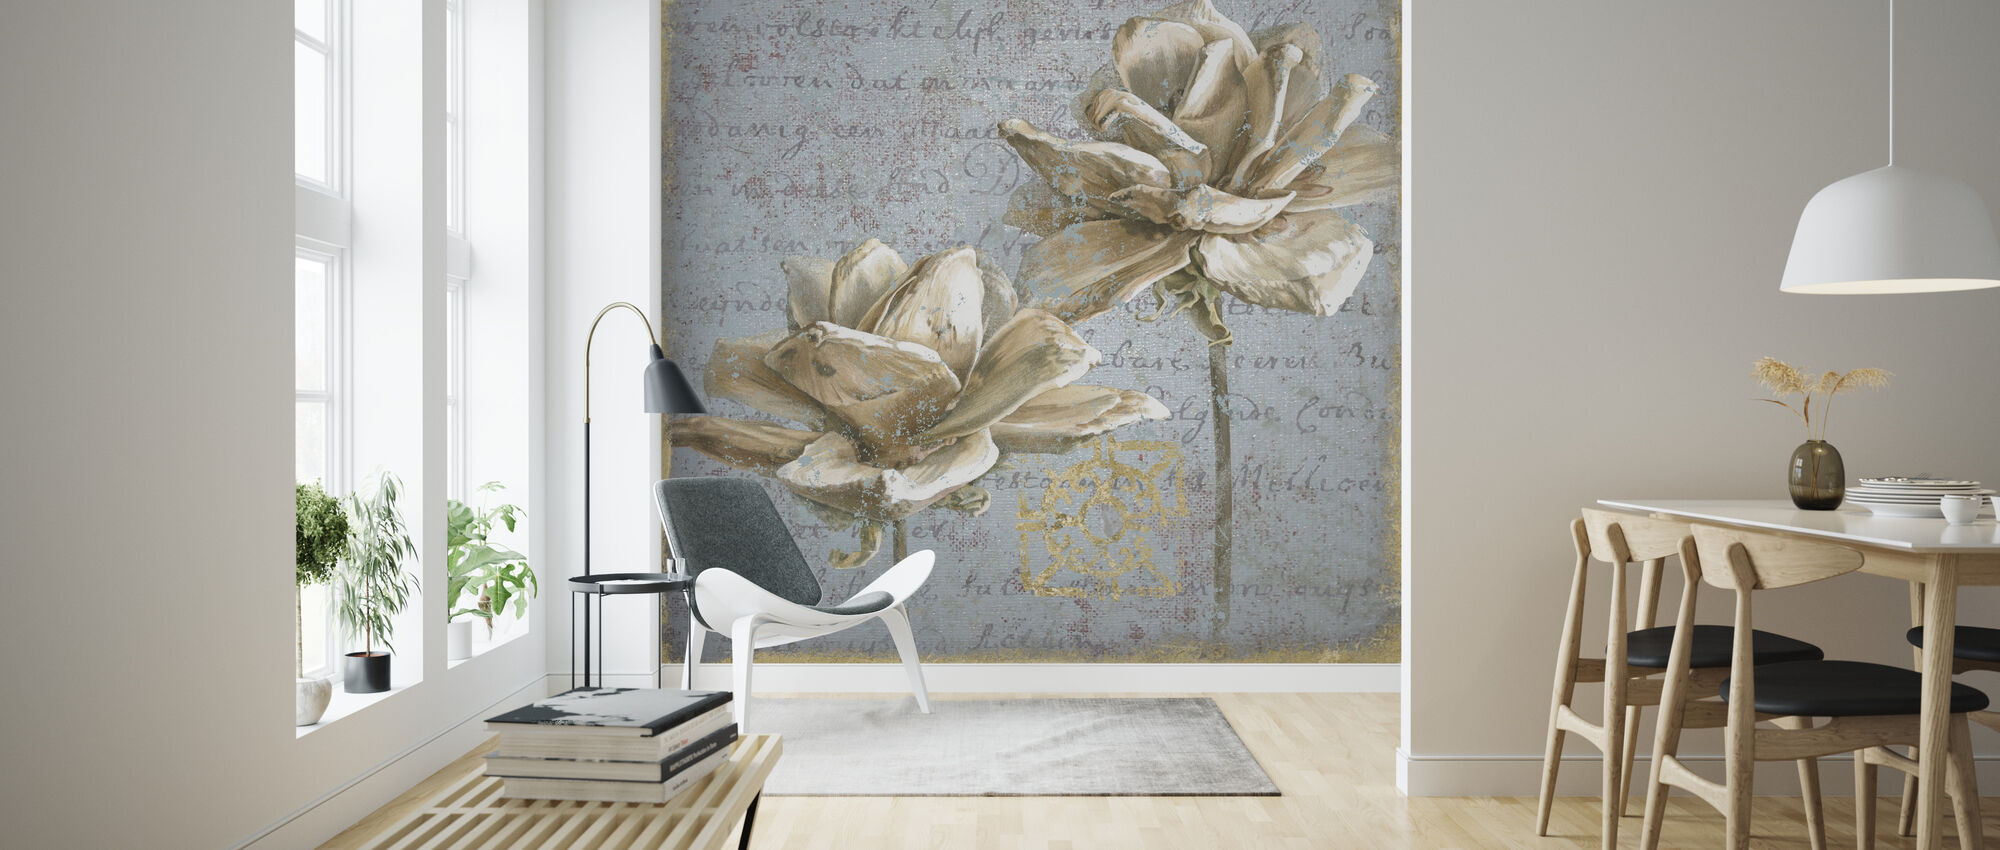 Seed Pod on Text II - Wallpaper - Living Room